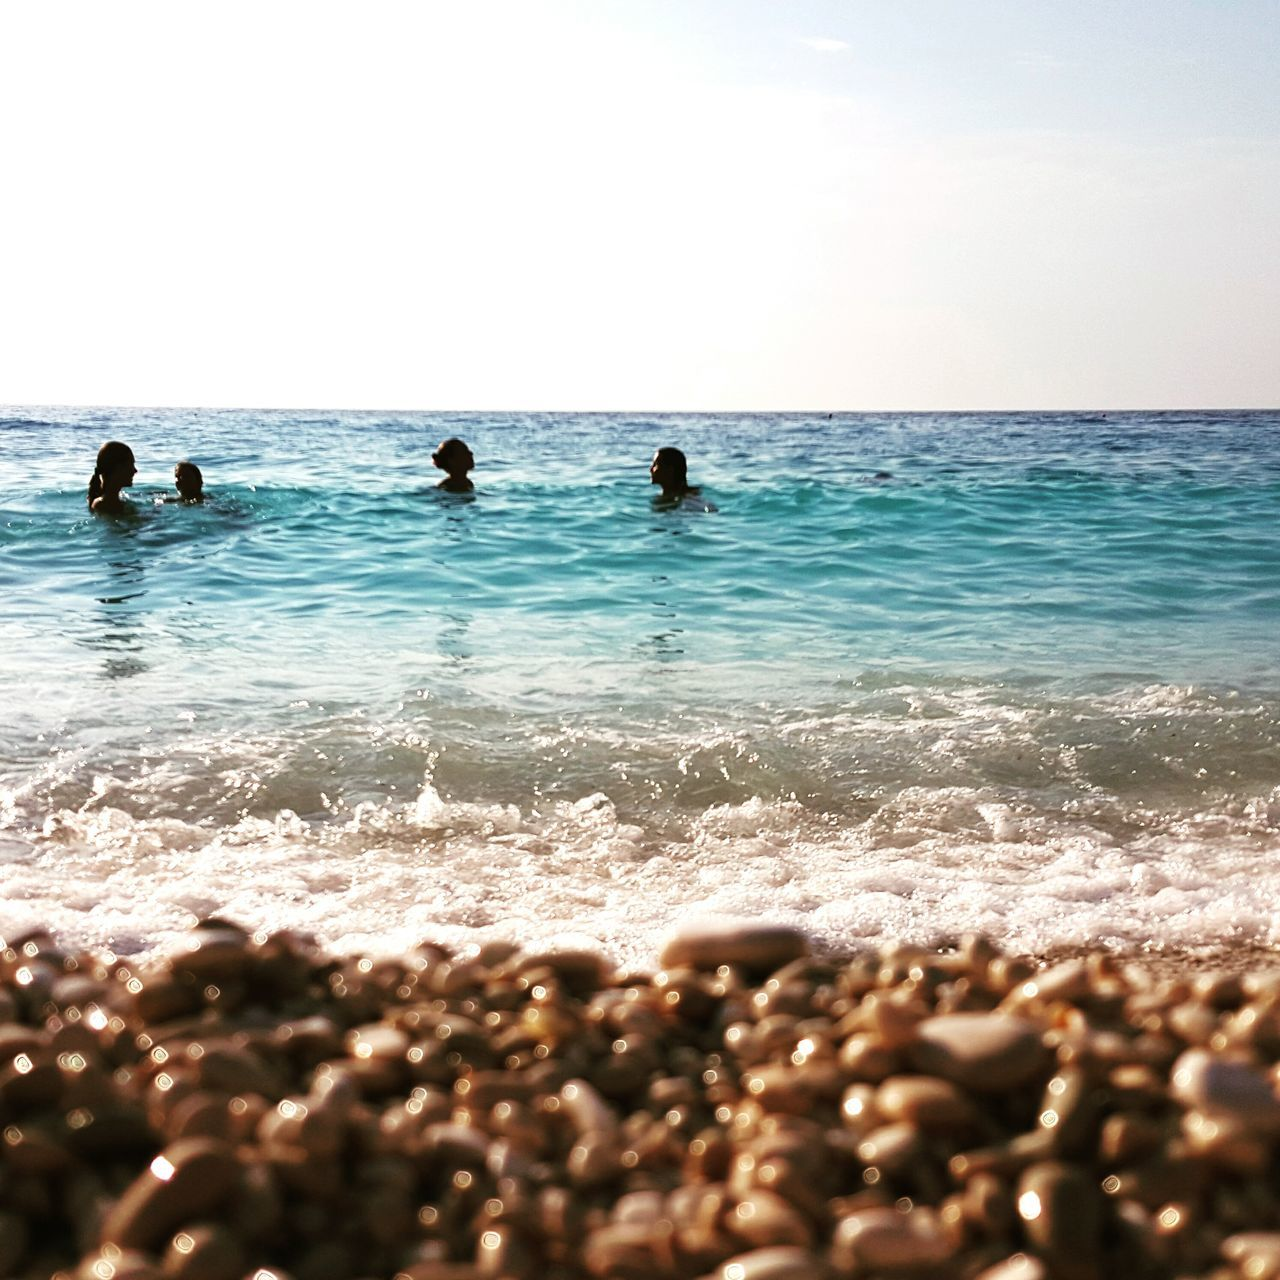 Enjoying Life Kefalonia Greece Mediterranean  Sea Mediterranean Sea Sun Summer Summertime Fun Beach On The Beach Pebbles My Favorite  Colors Sentimental Beach Photography Myrtos KIOMI